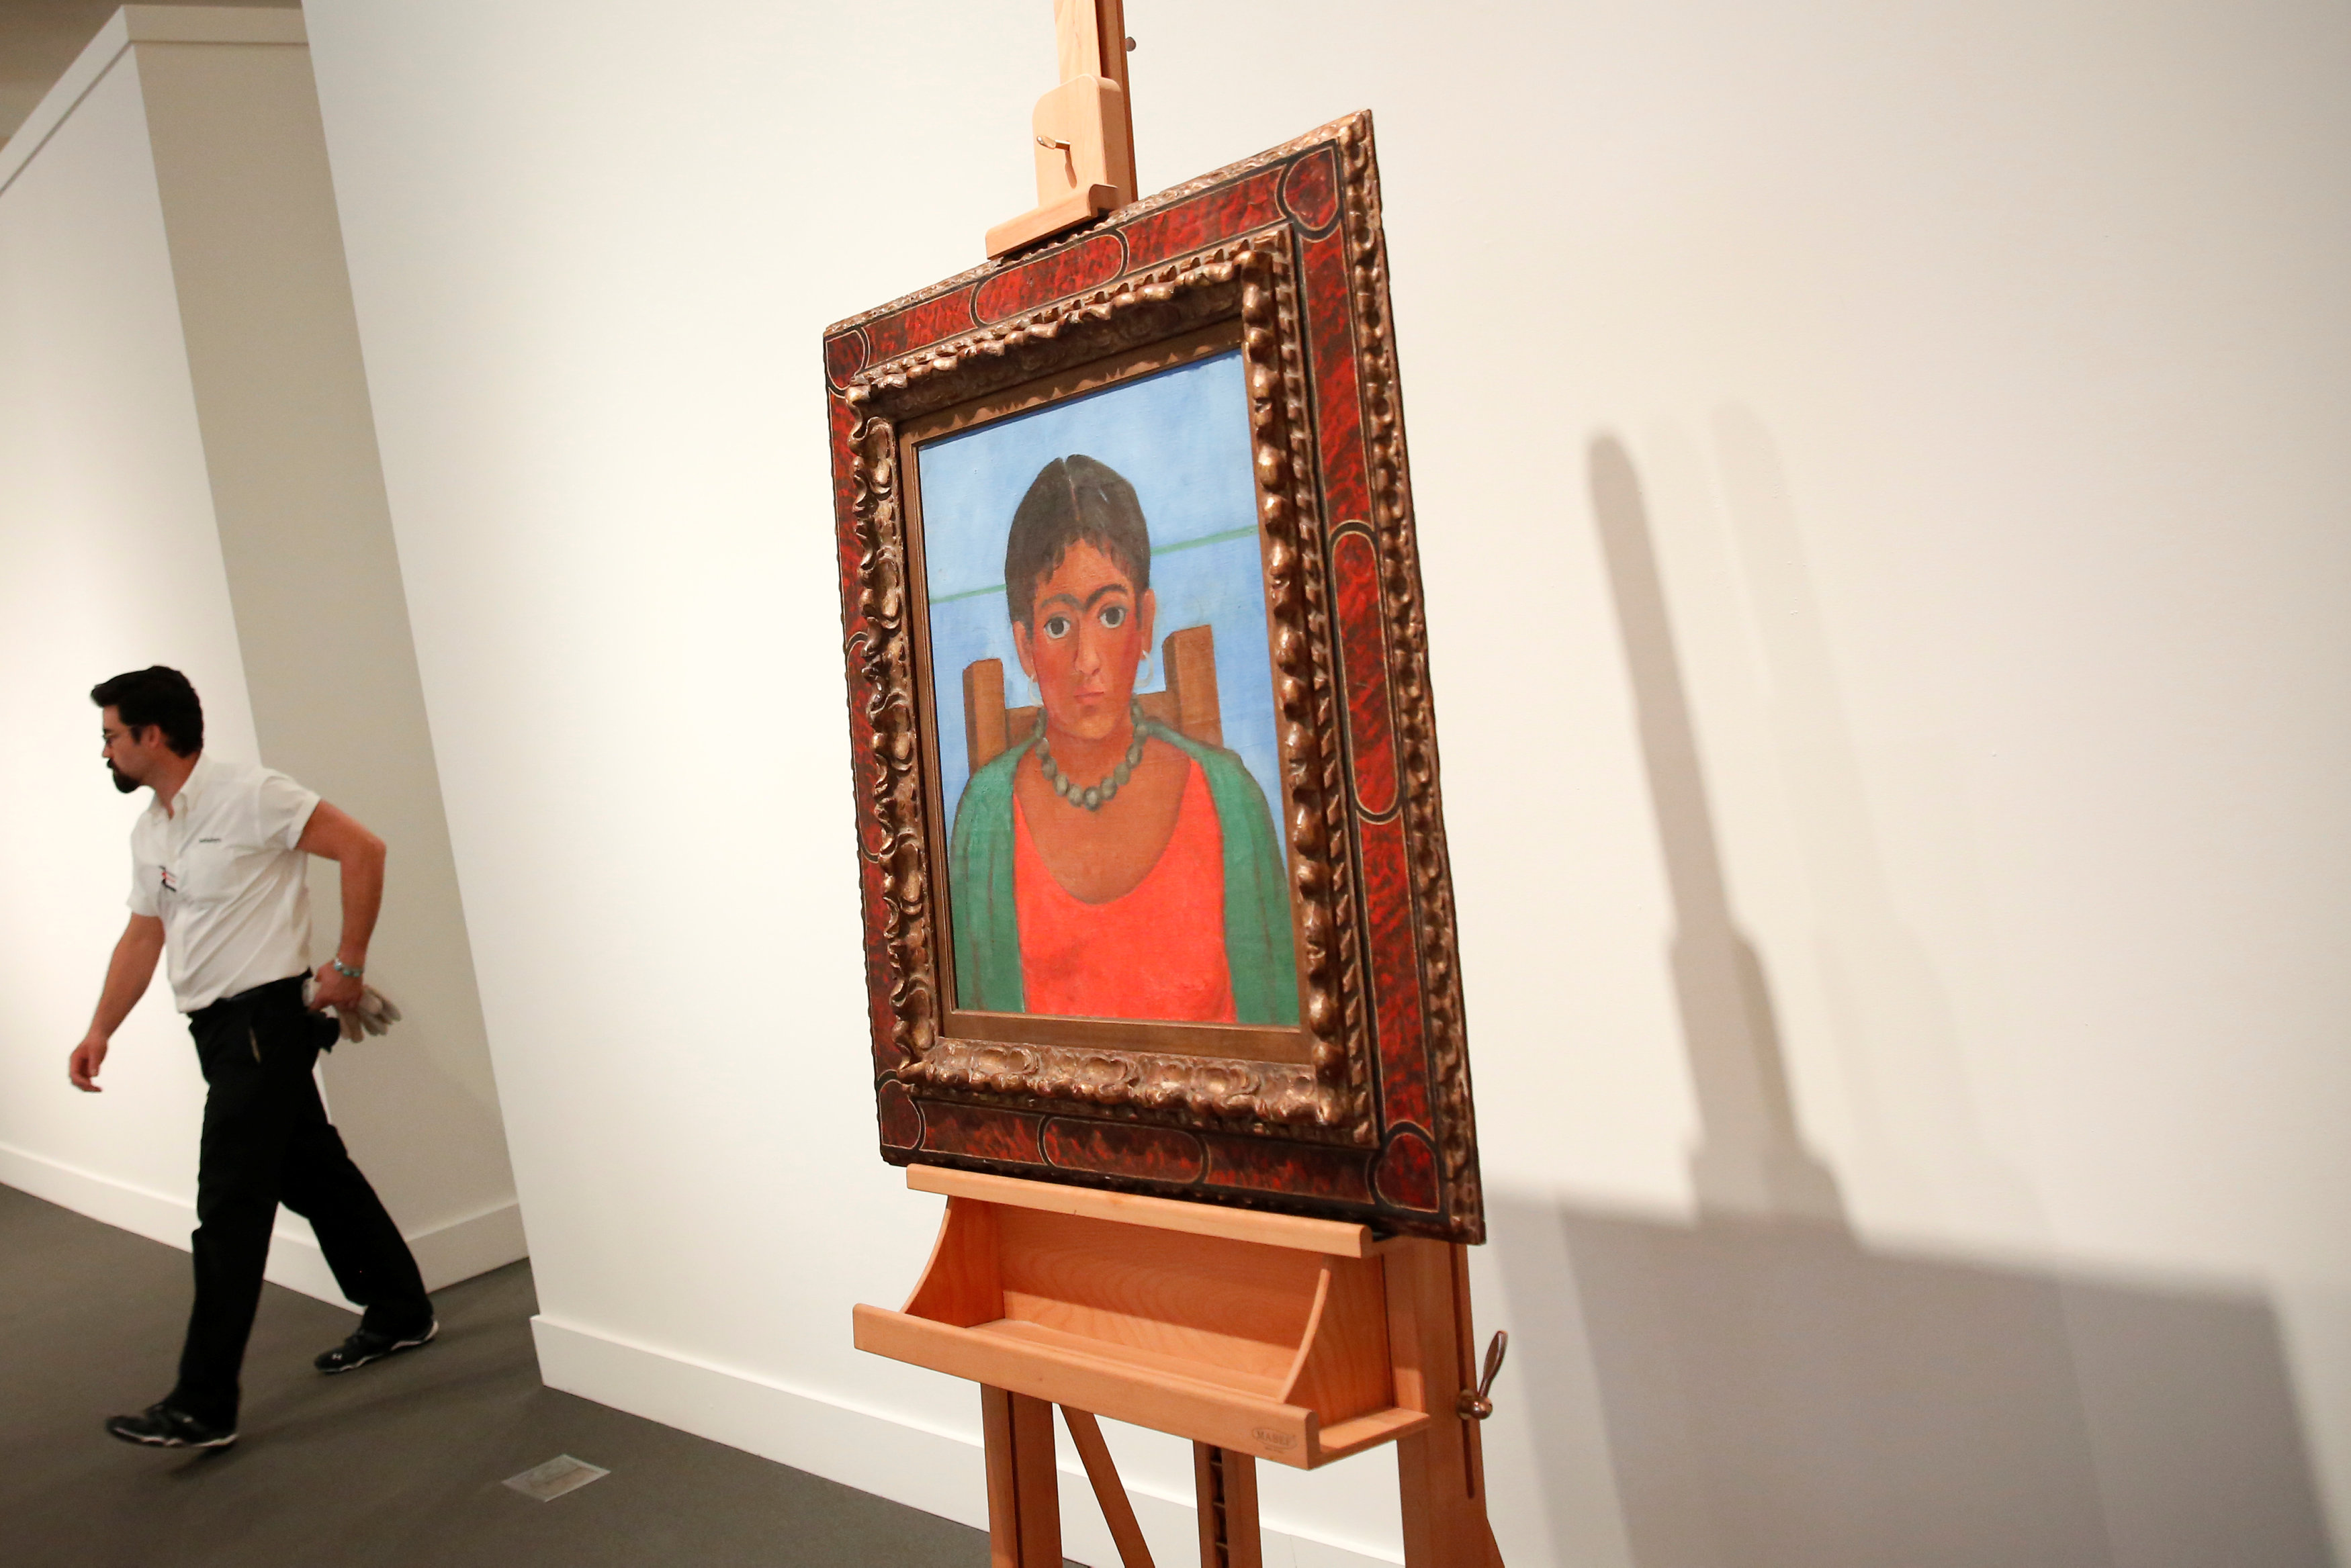 Artis Frida Kahlo's painting 'Nina Con Collar' sits on an easel at Sotheby's auction house in New York